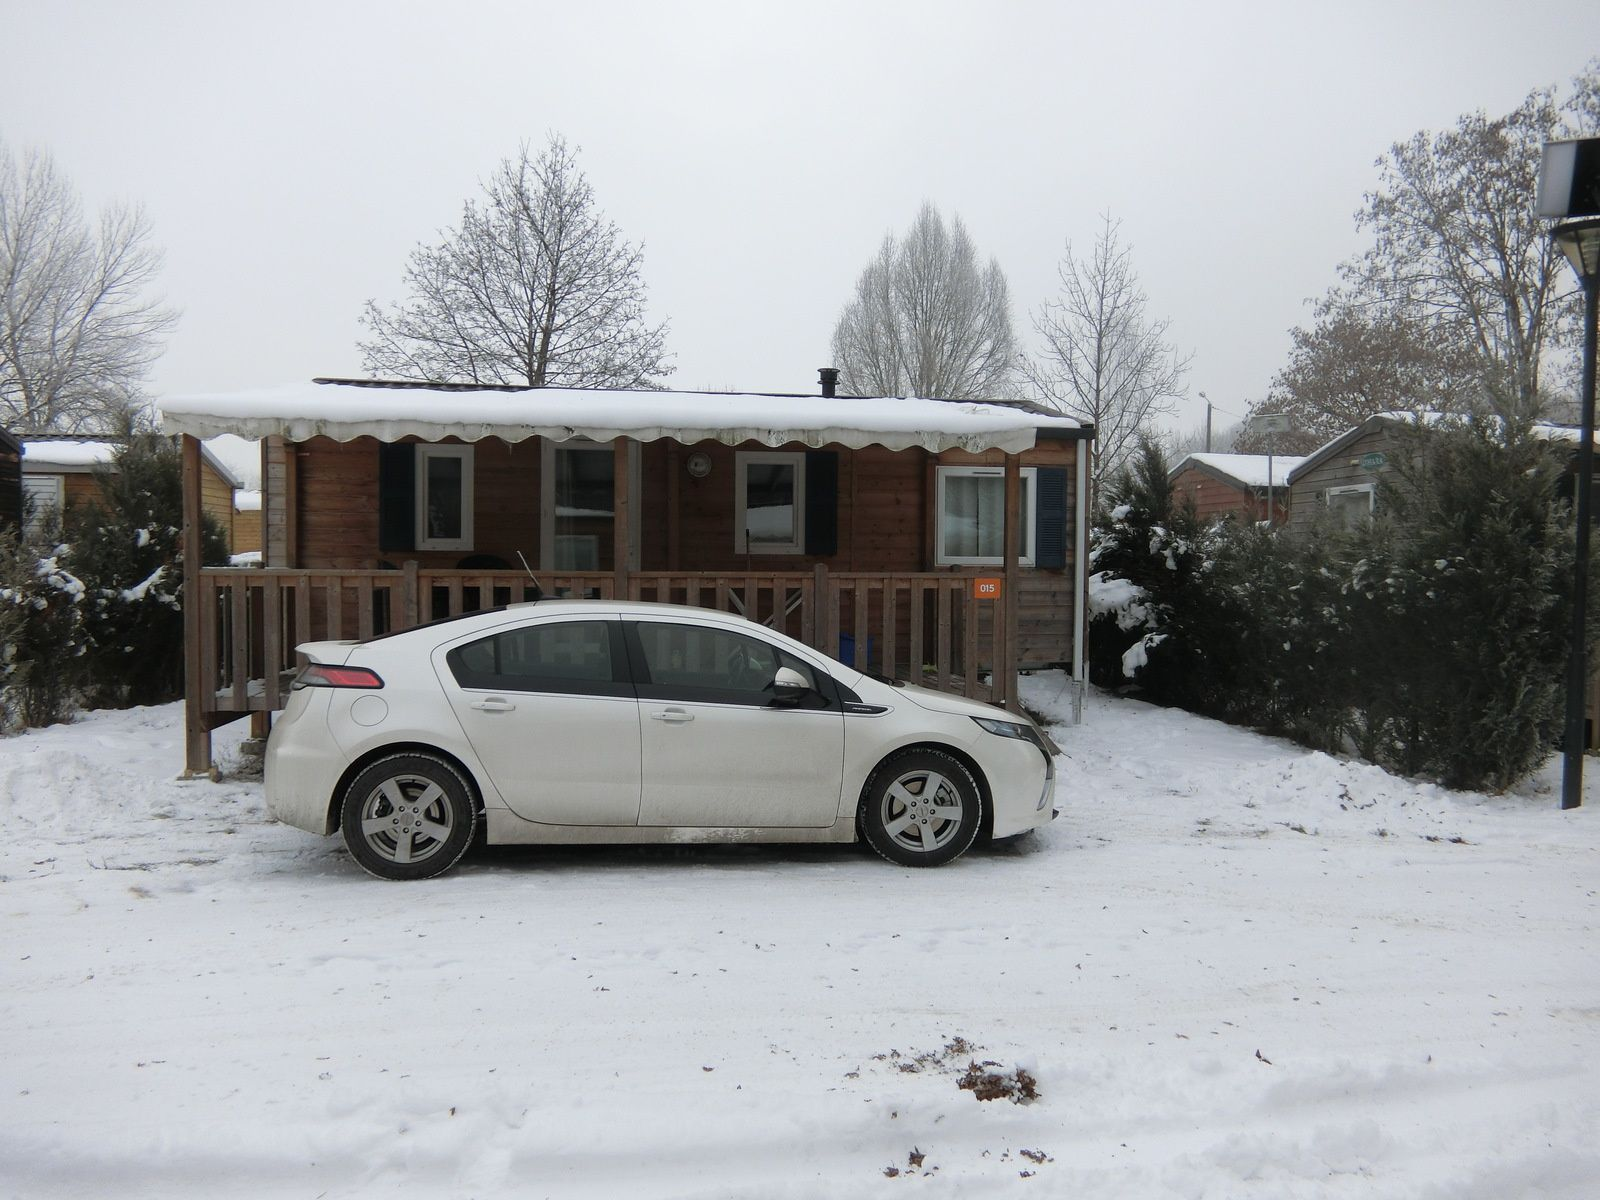 Notre mobilhome et ma voiture